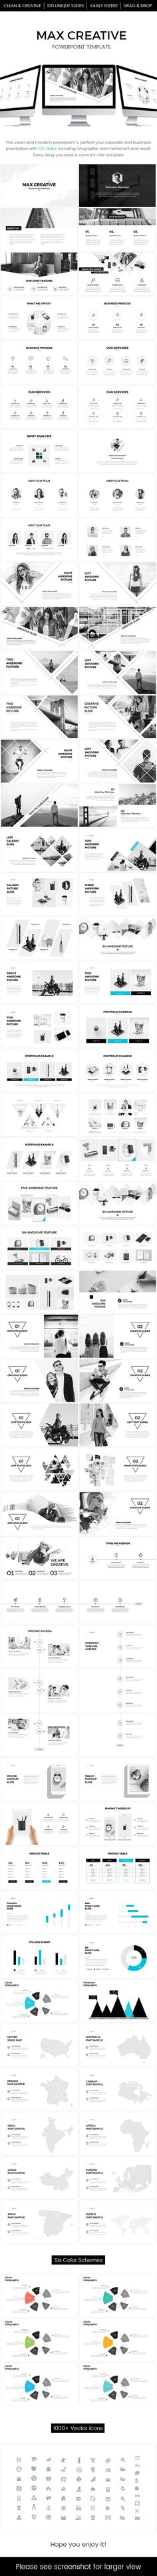 businew powerpoint template | creative, template and business, Presentation templates